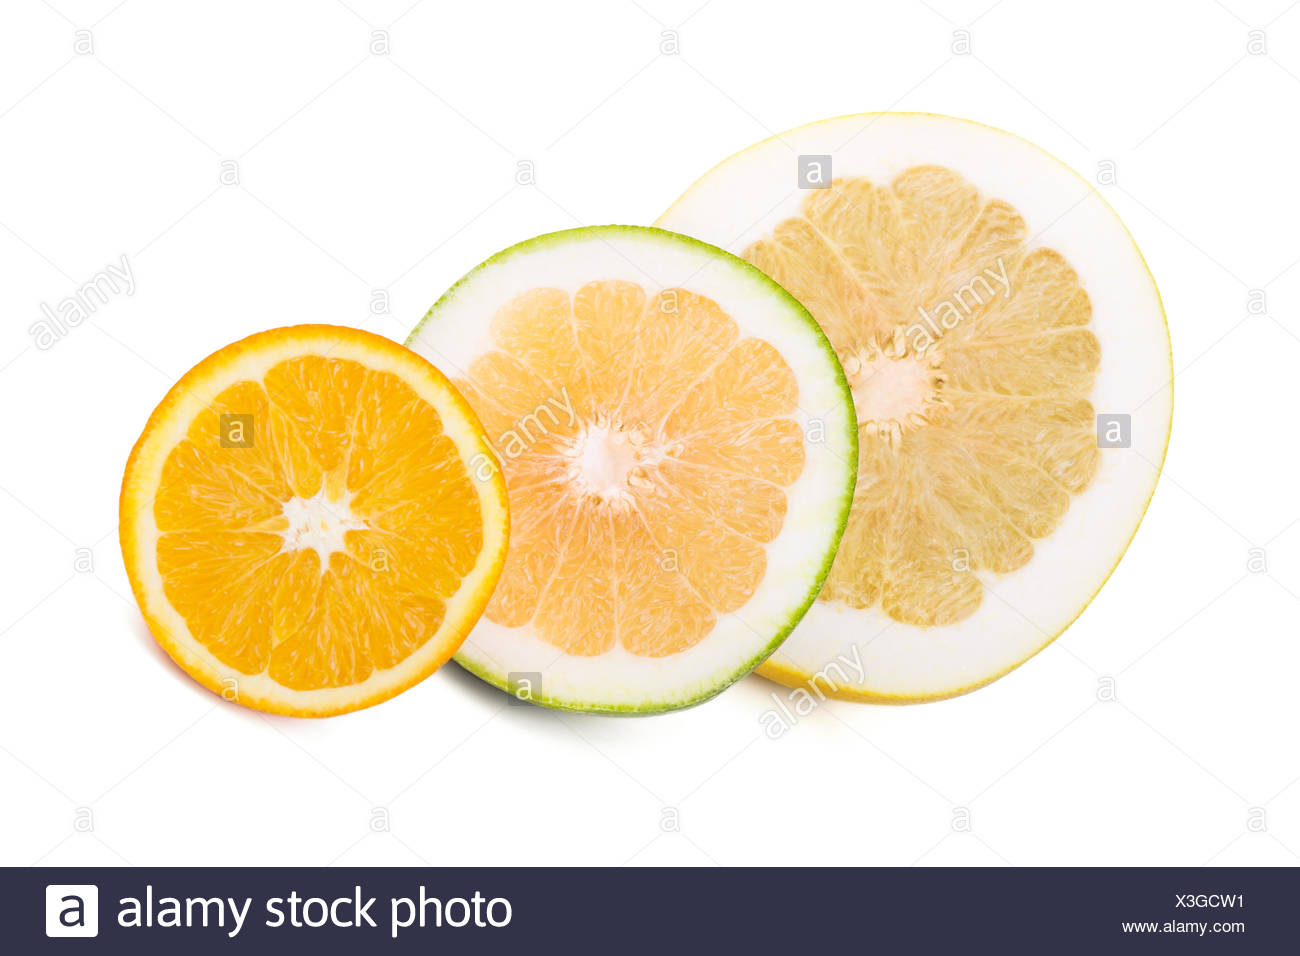 Pomelo, sweetie and orange - Stock Image